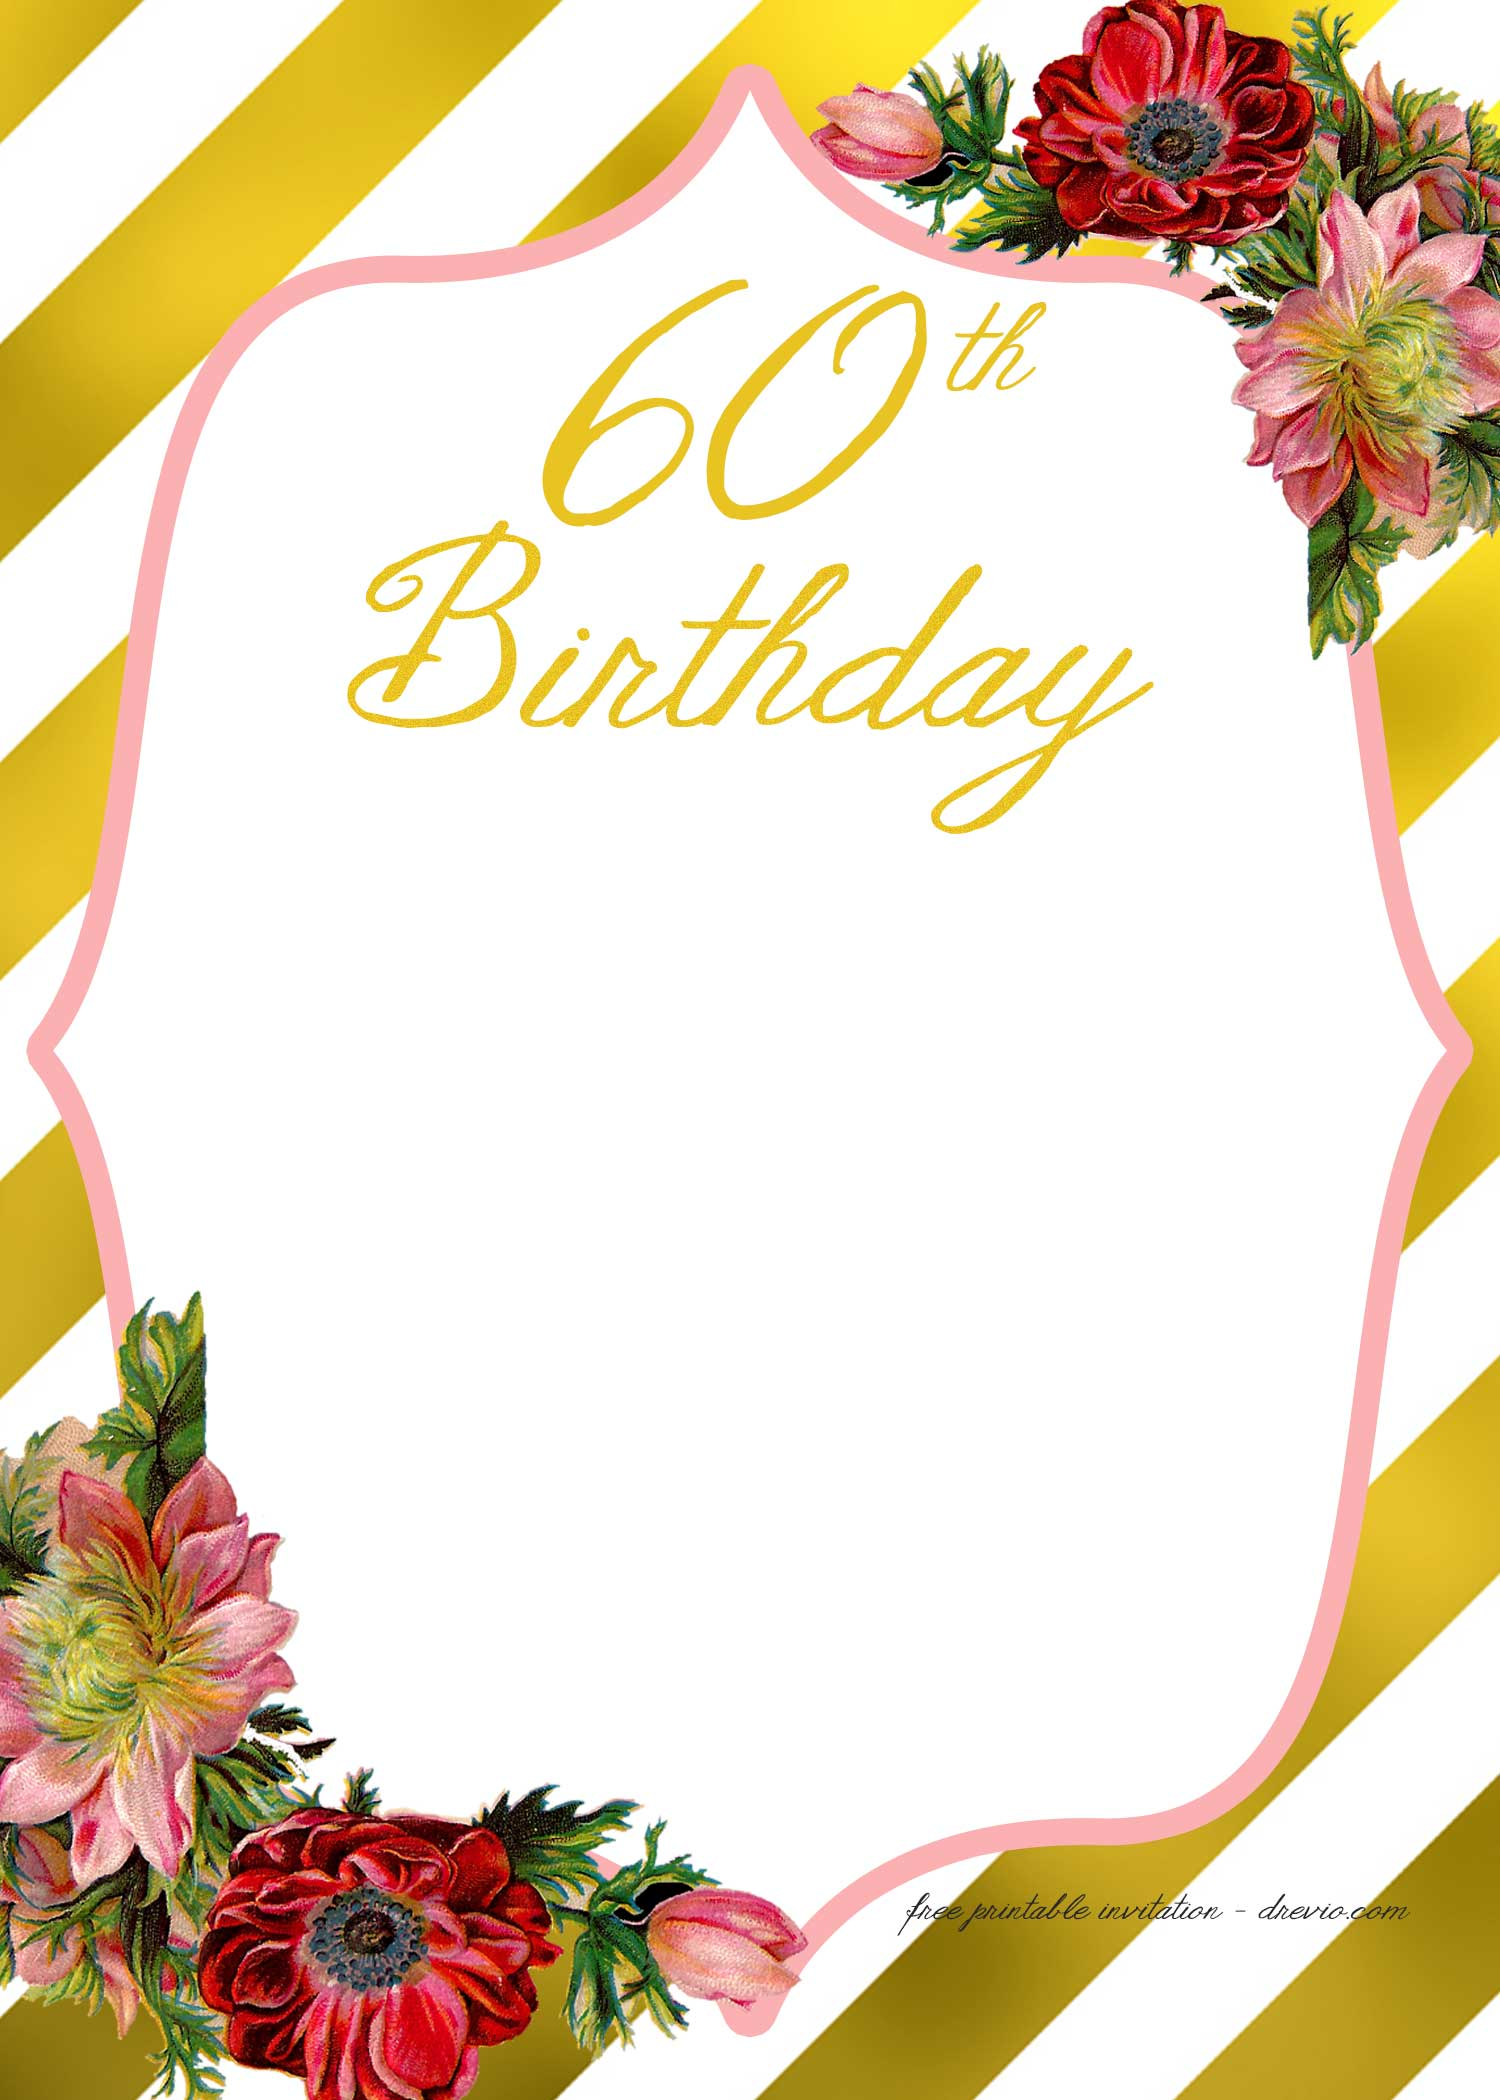 Adult Birthday Invitations Template – For 50th Years Old